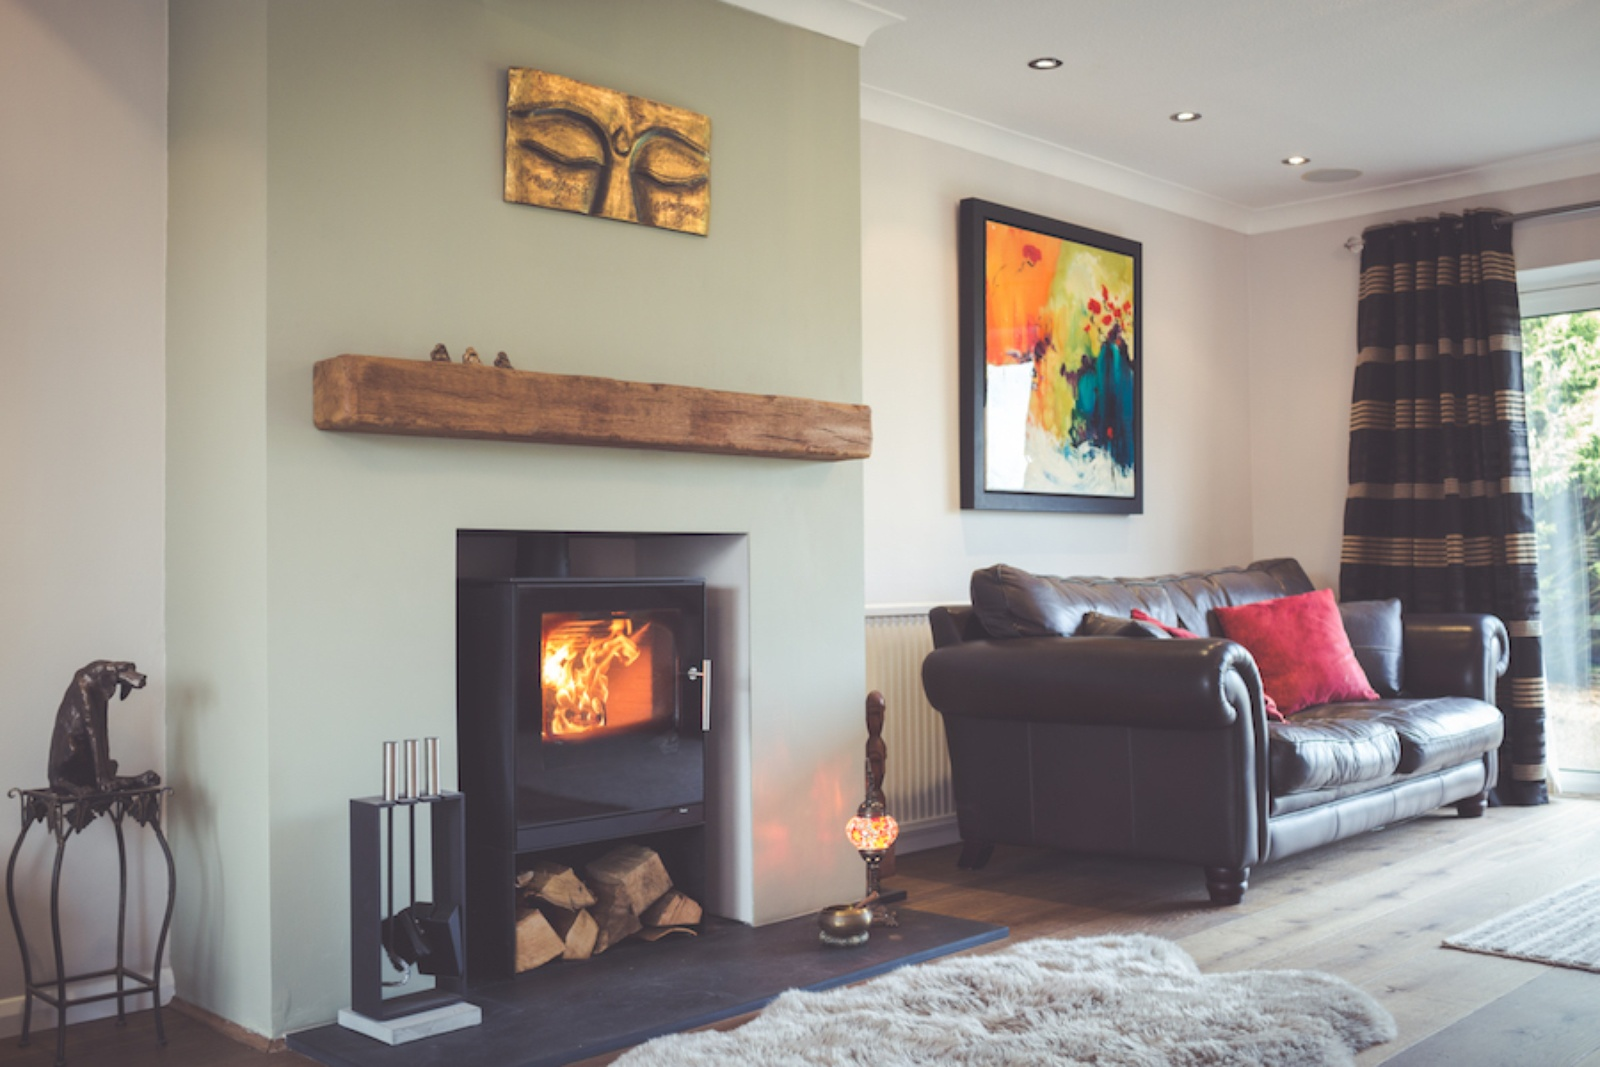 The stunning Rais Q-Tee Two on store stand in a remodelled fireplace. Originally a wooden surround and marble hearth made the room feel dated.